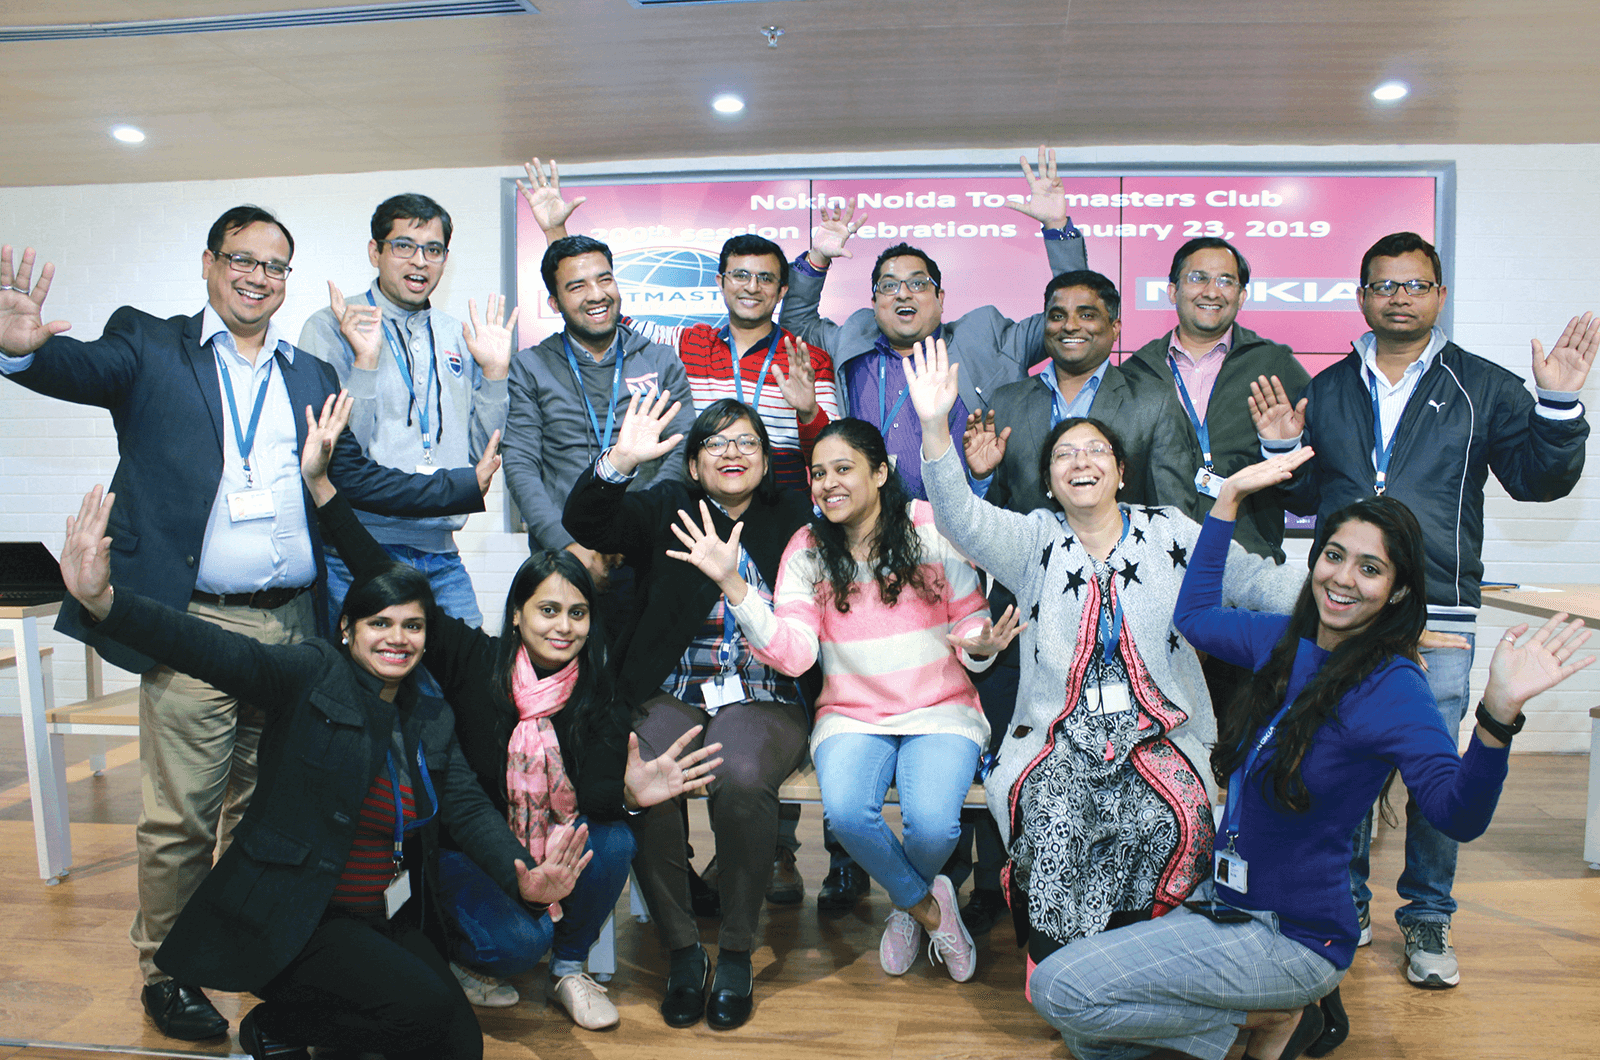 Group of Toastmasters members standing with banner